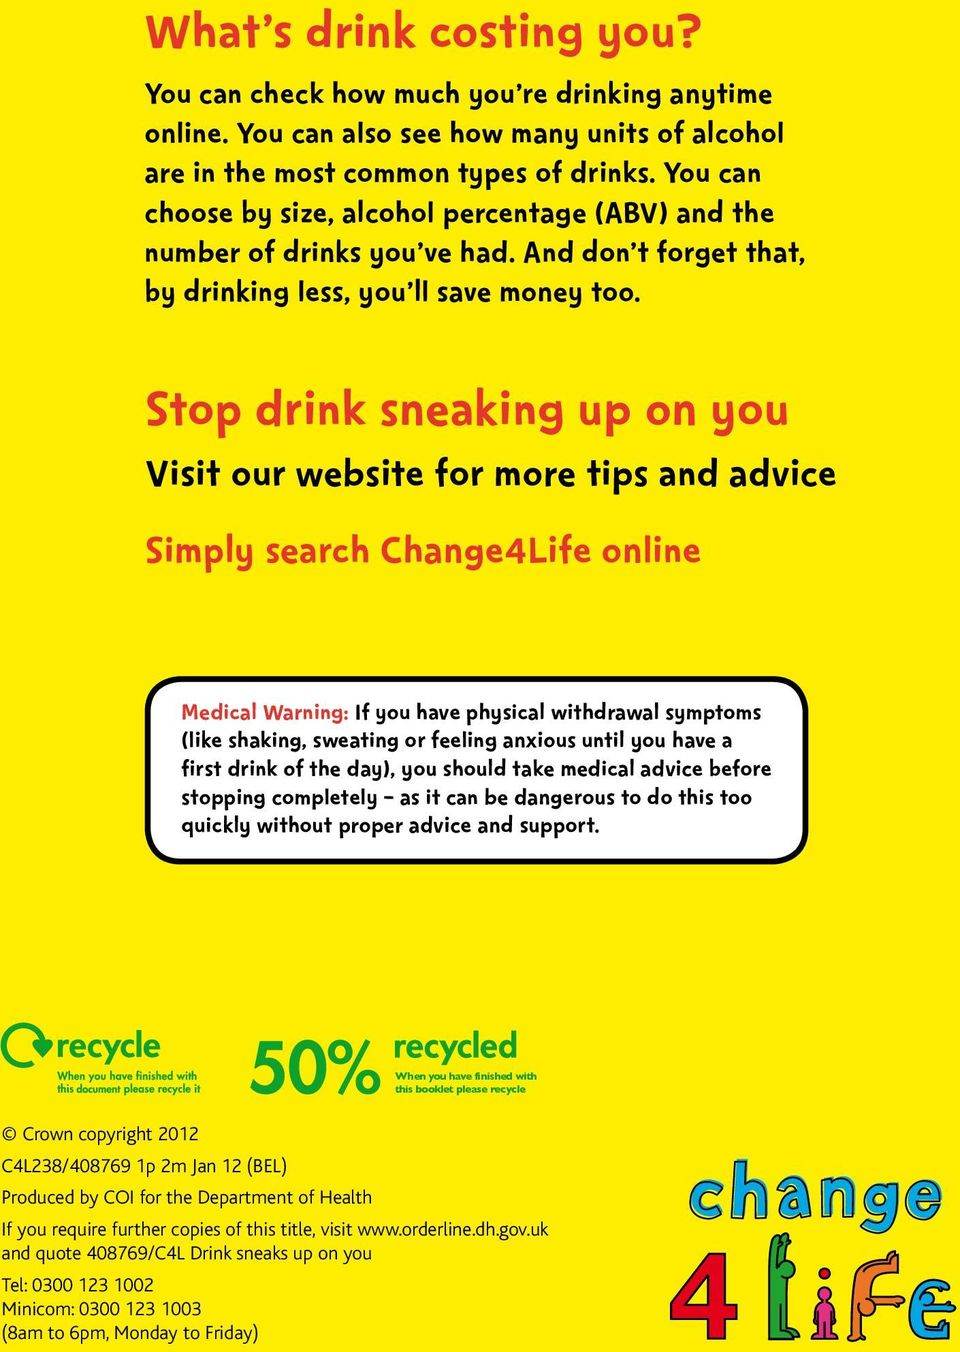 Stop drink sneaking up on you Visit our website for more tips and advice Simply search Change4Life online Medical Warning: If you have physical withdrawal symptoms (like shaking, sweating or feeling